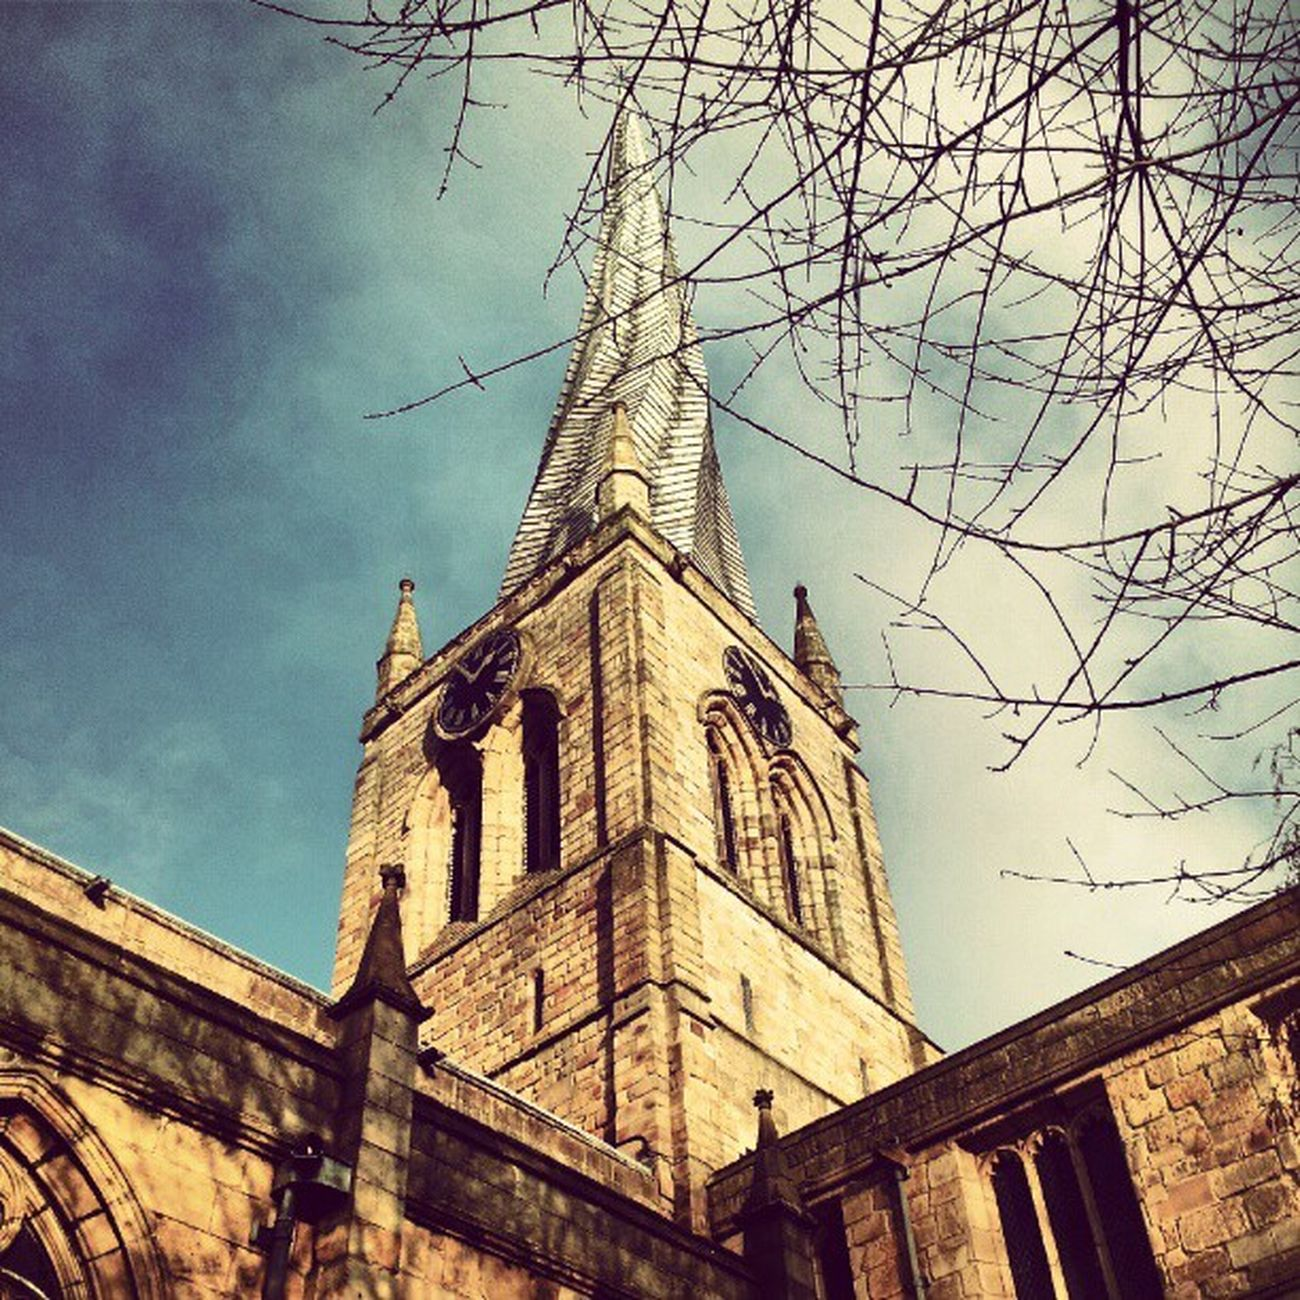 Crookedspire Churchifsaintmaryandallsaints Chesterfieldchurch Spire  spireites